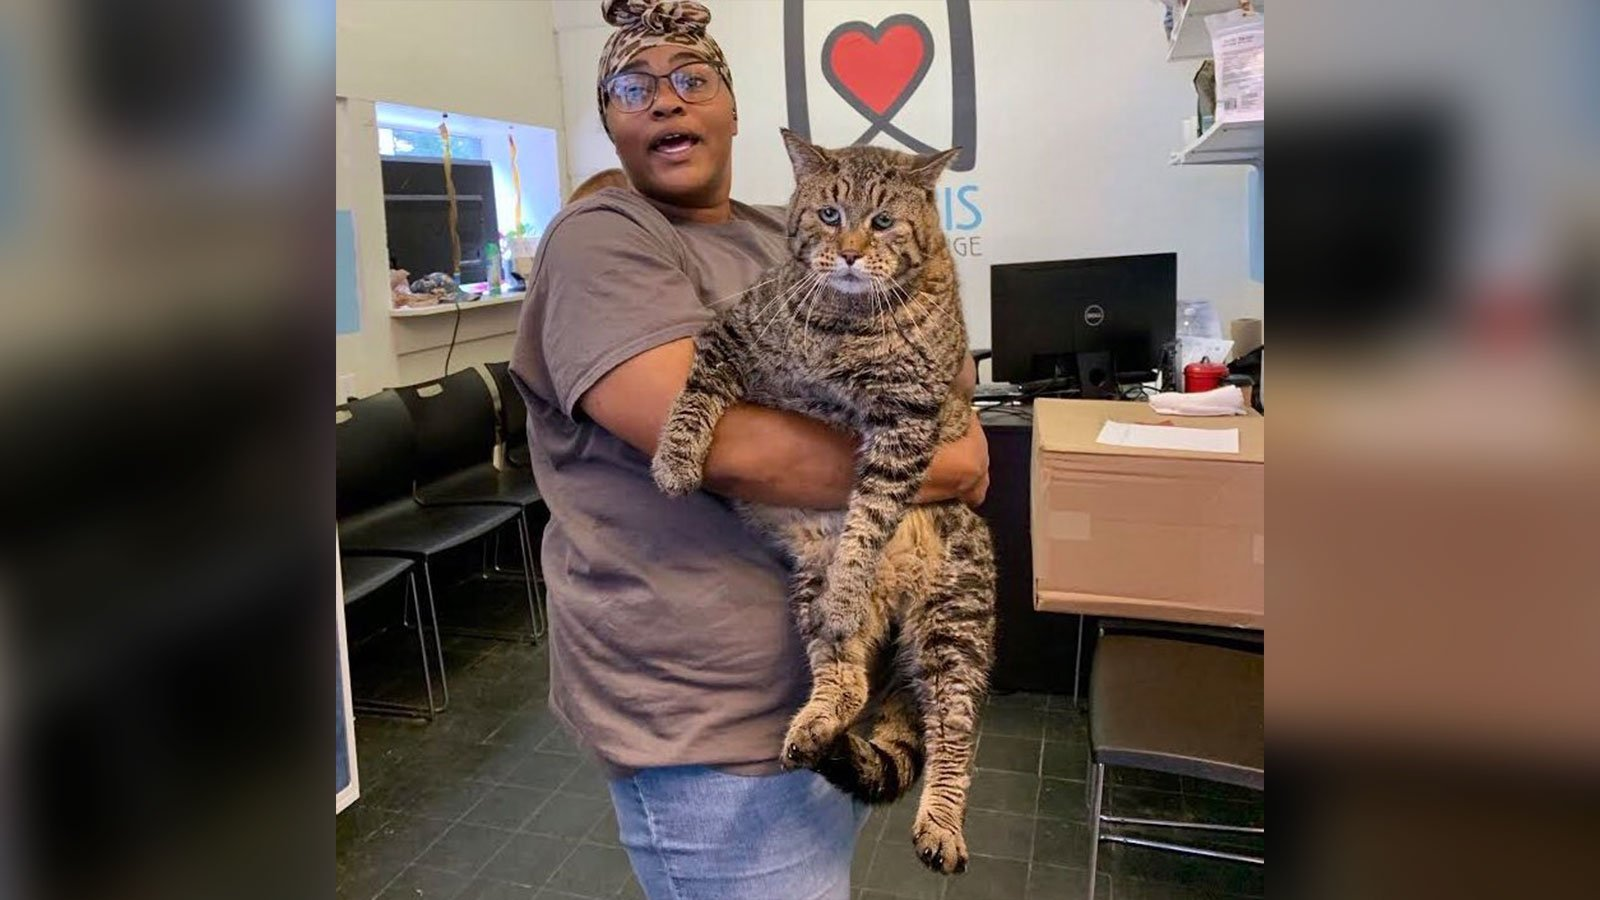 This jumbo, 26-pound cat became a star after an animal shelter said he needed a home